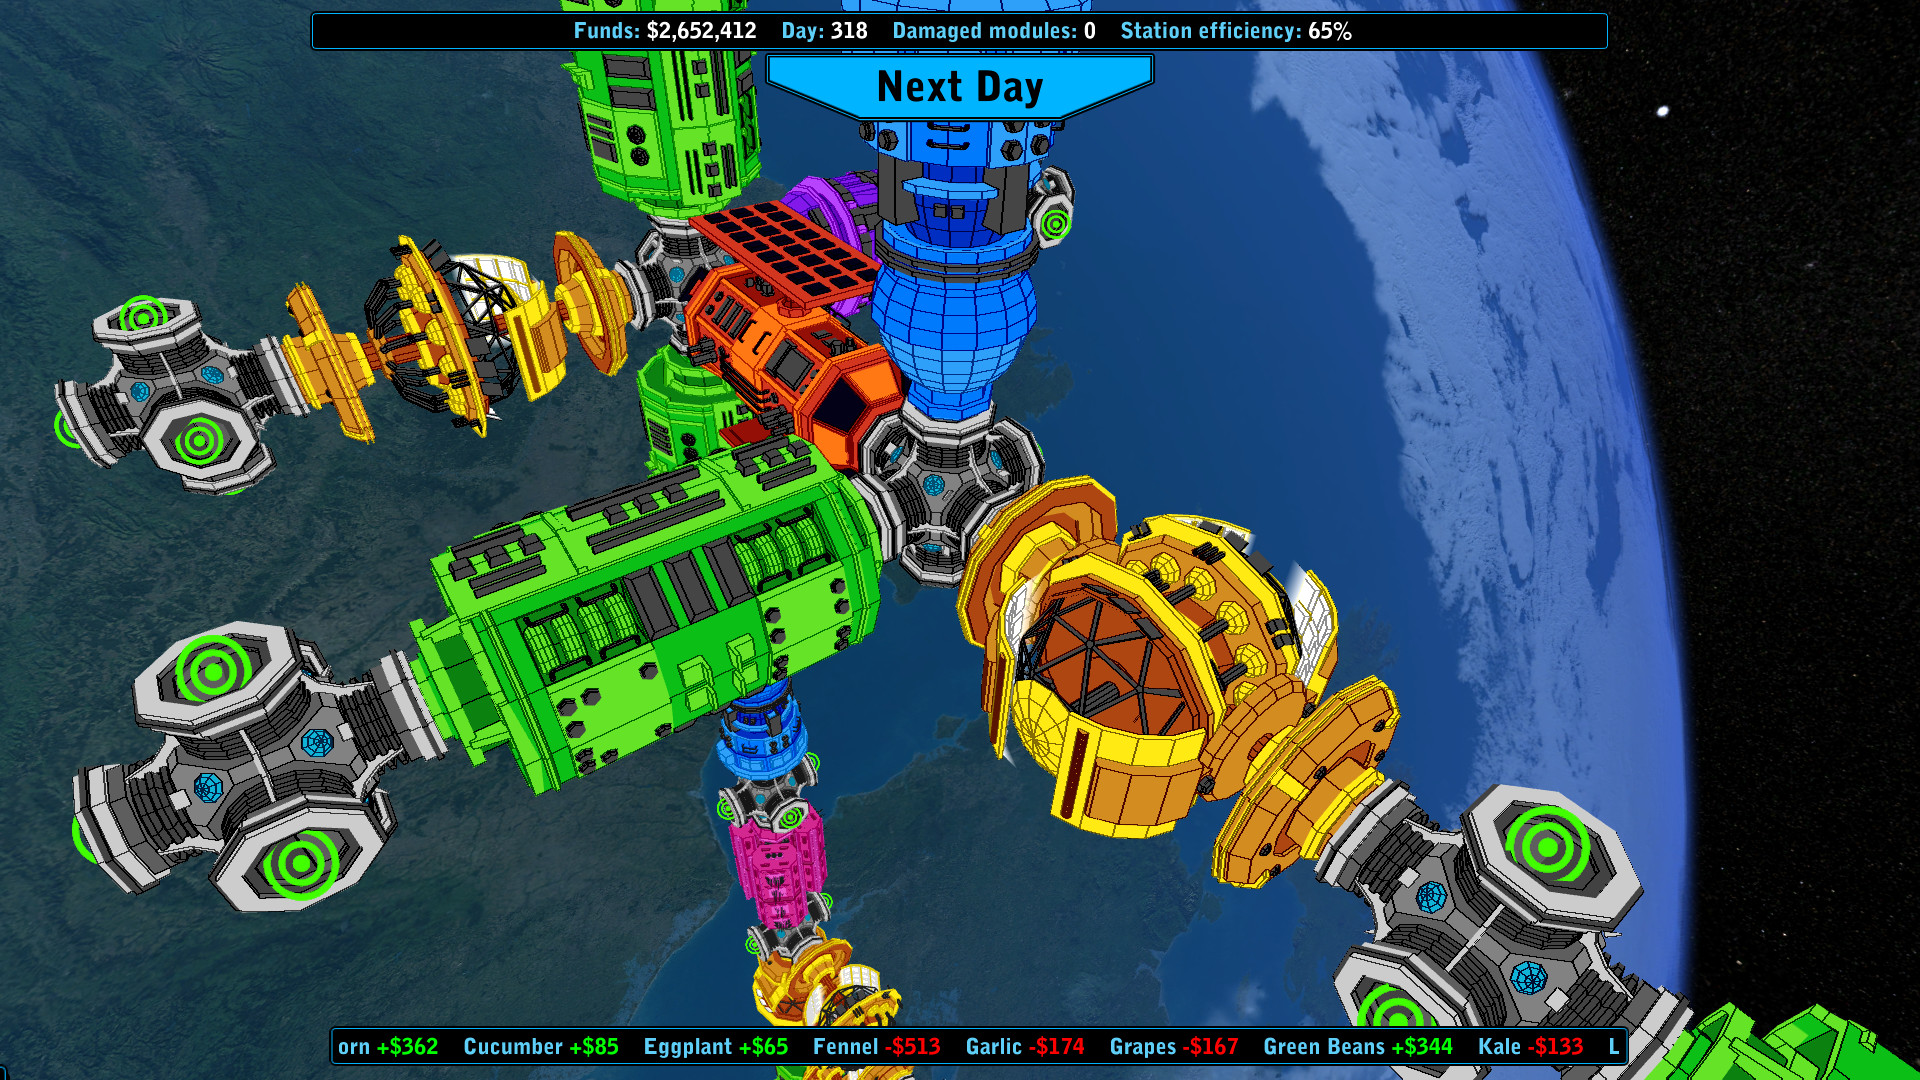 Developing Universal Space Station Inc. – A new game from a veteran developer